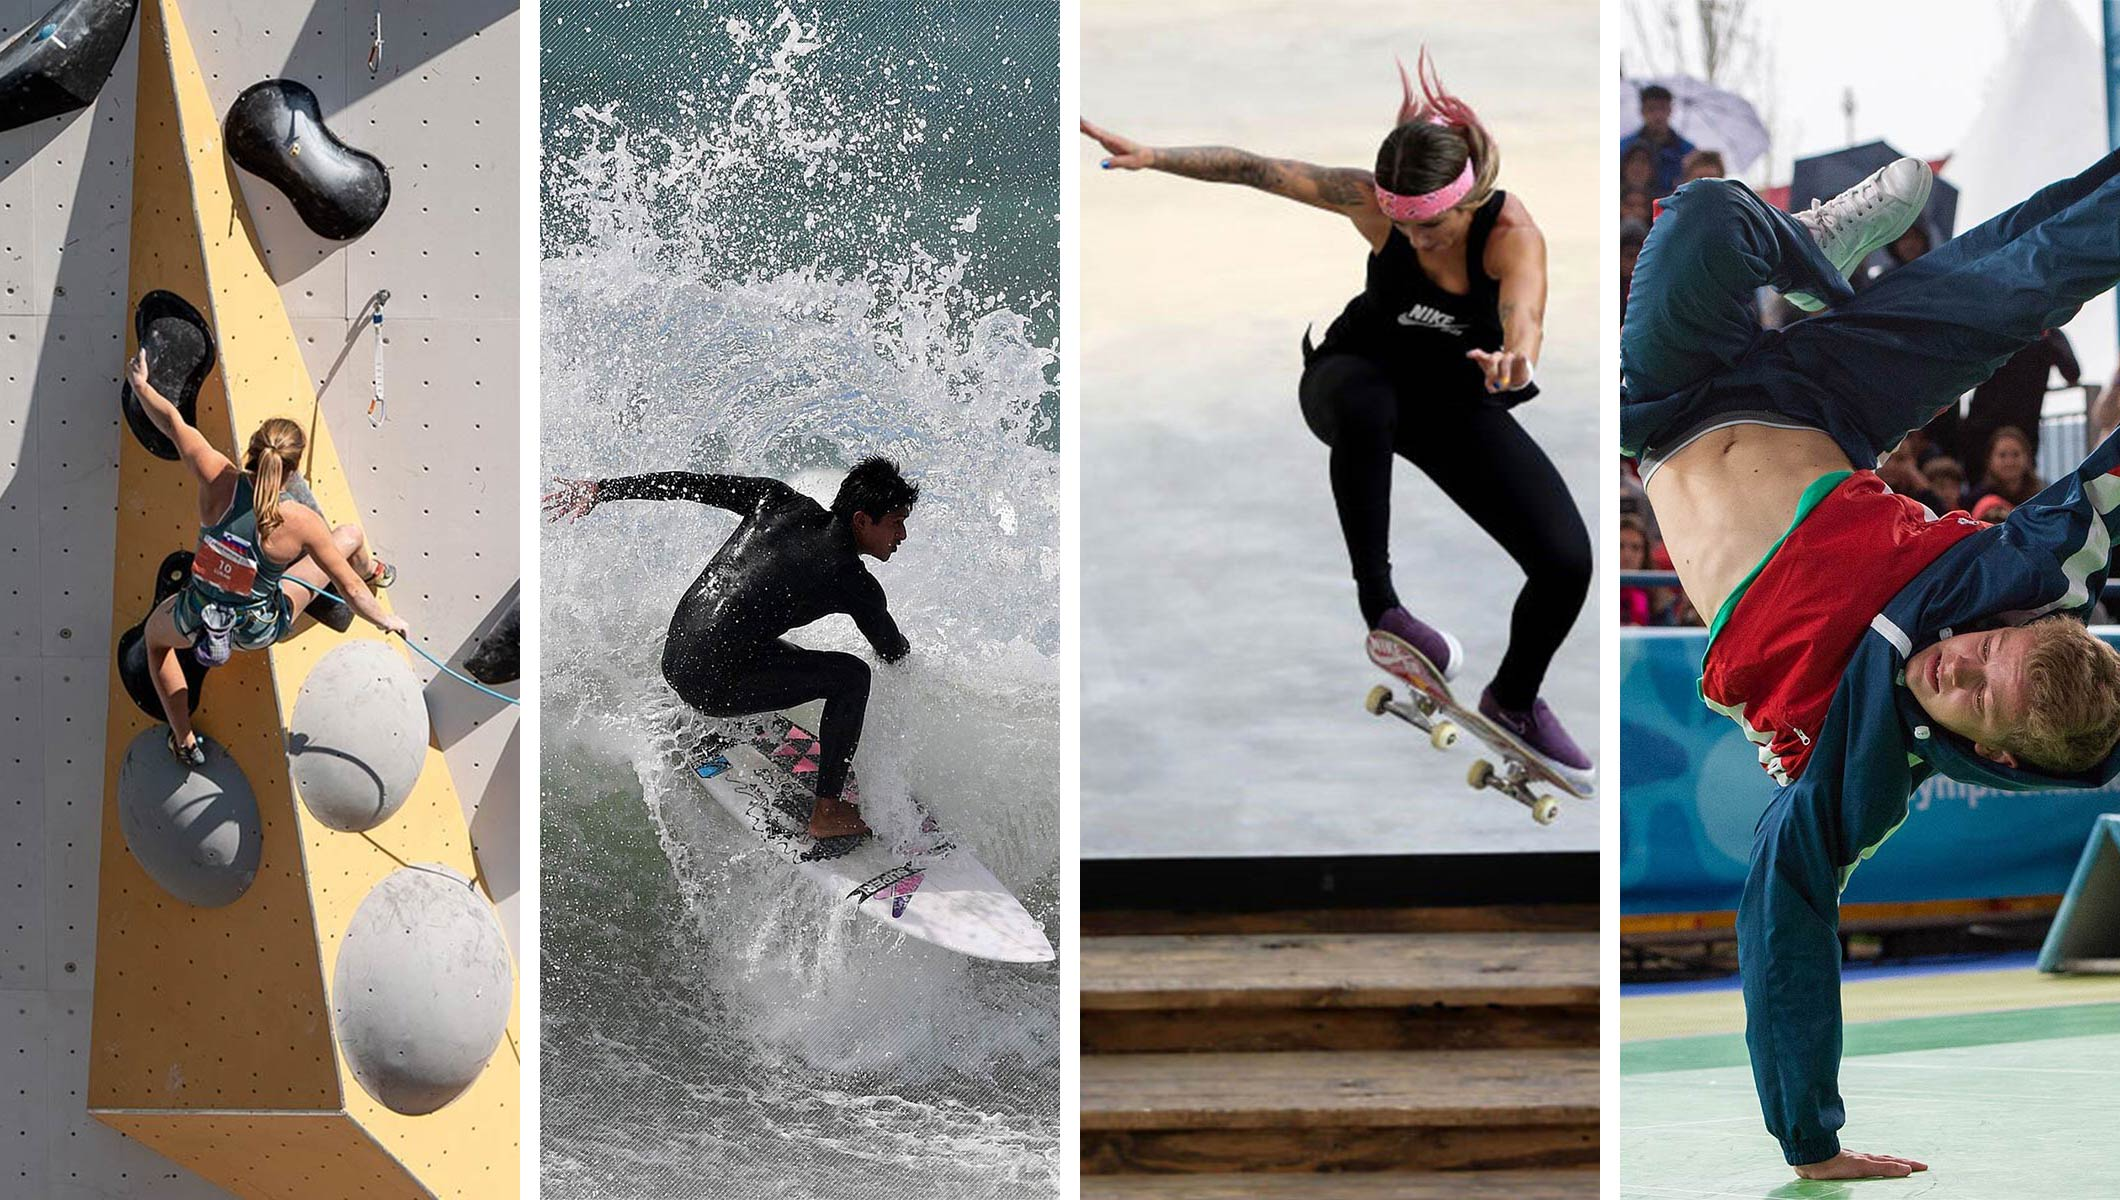 Breaking, skateboarding, sport climbing and surfing provisionally included on Paris 2024 Olympic sports programme